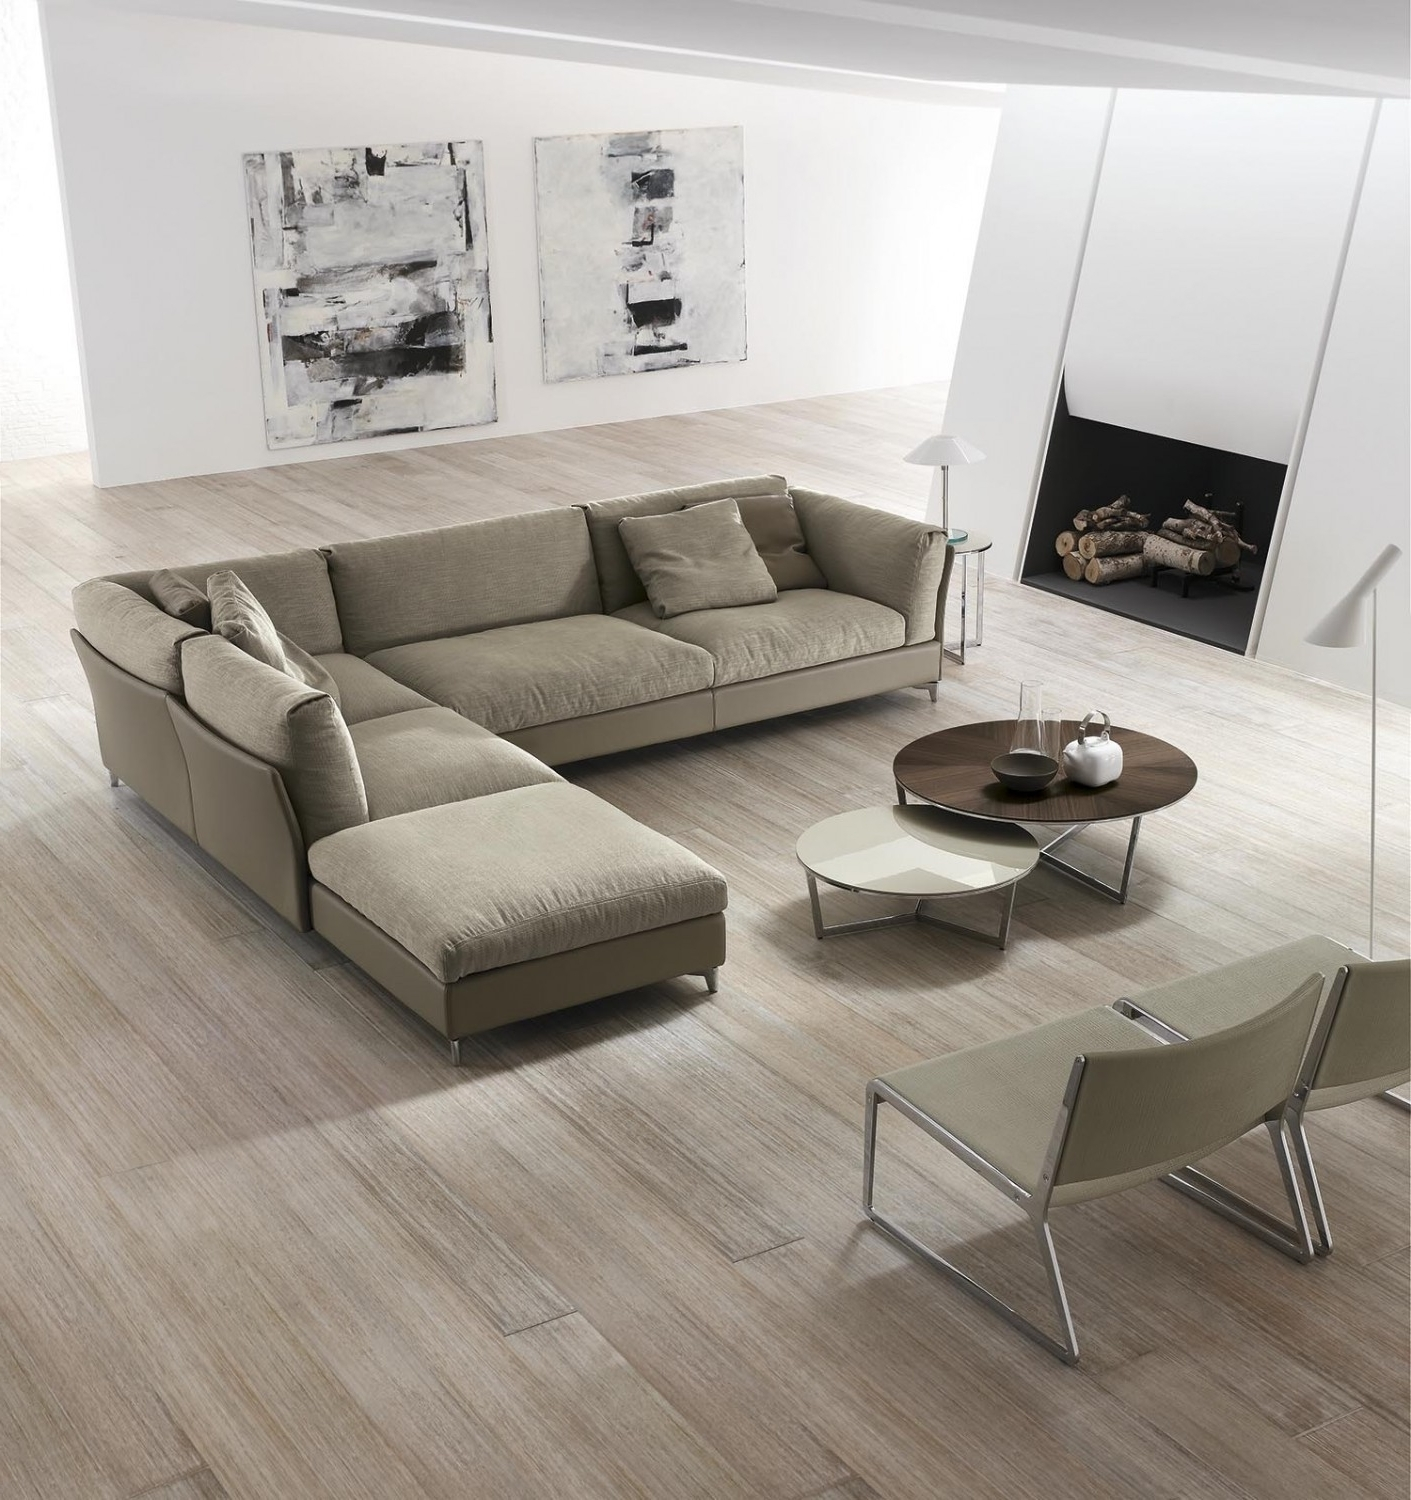 Widely Used Sectional Sofas At Chicago Regarding Awesome Sectional Sofa Chicago – Buildsimplehome (View 5 of 15)